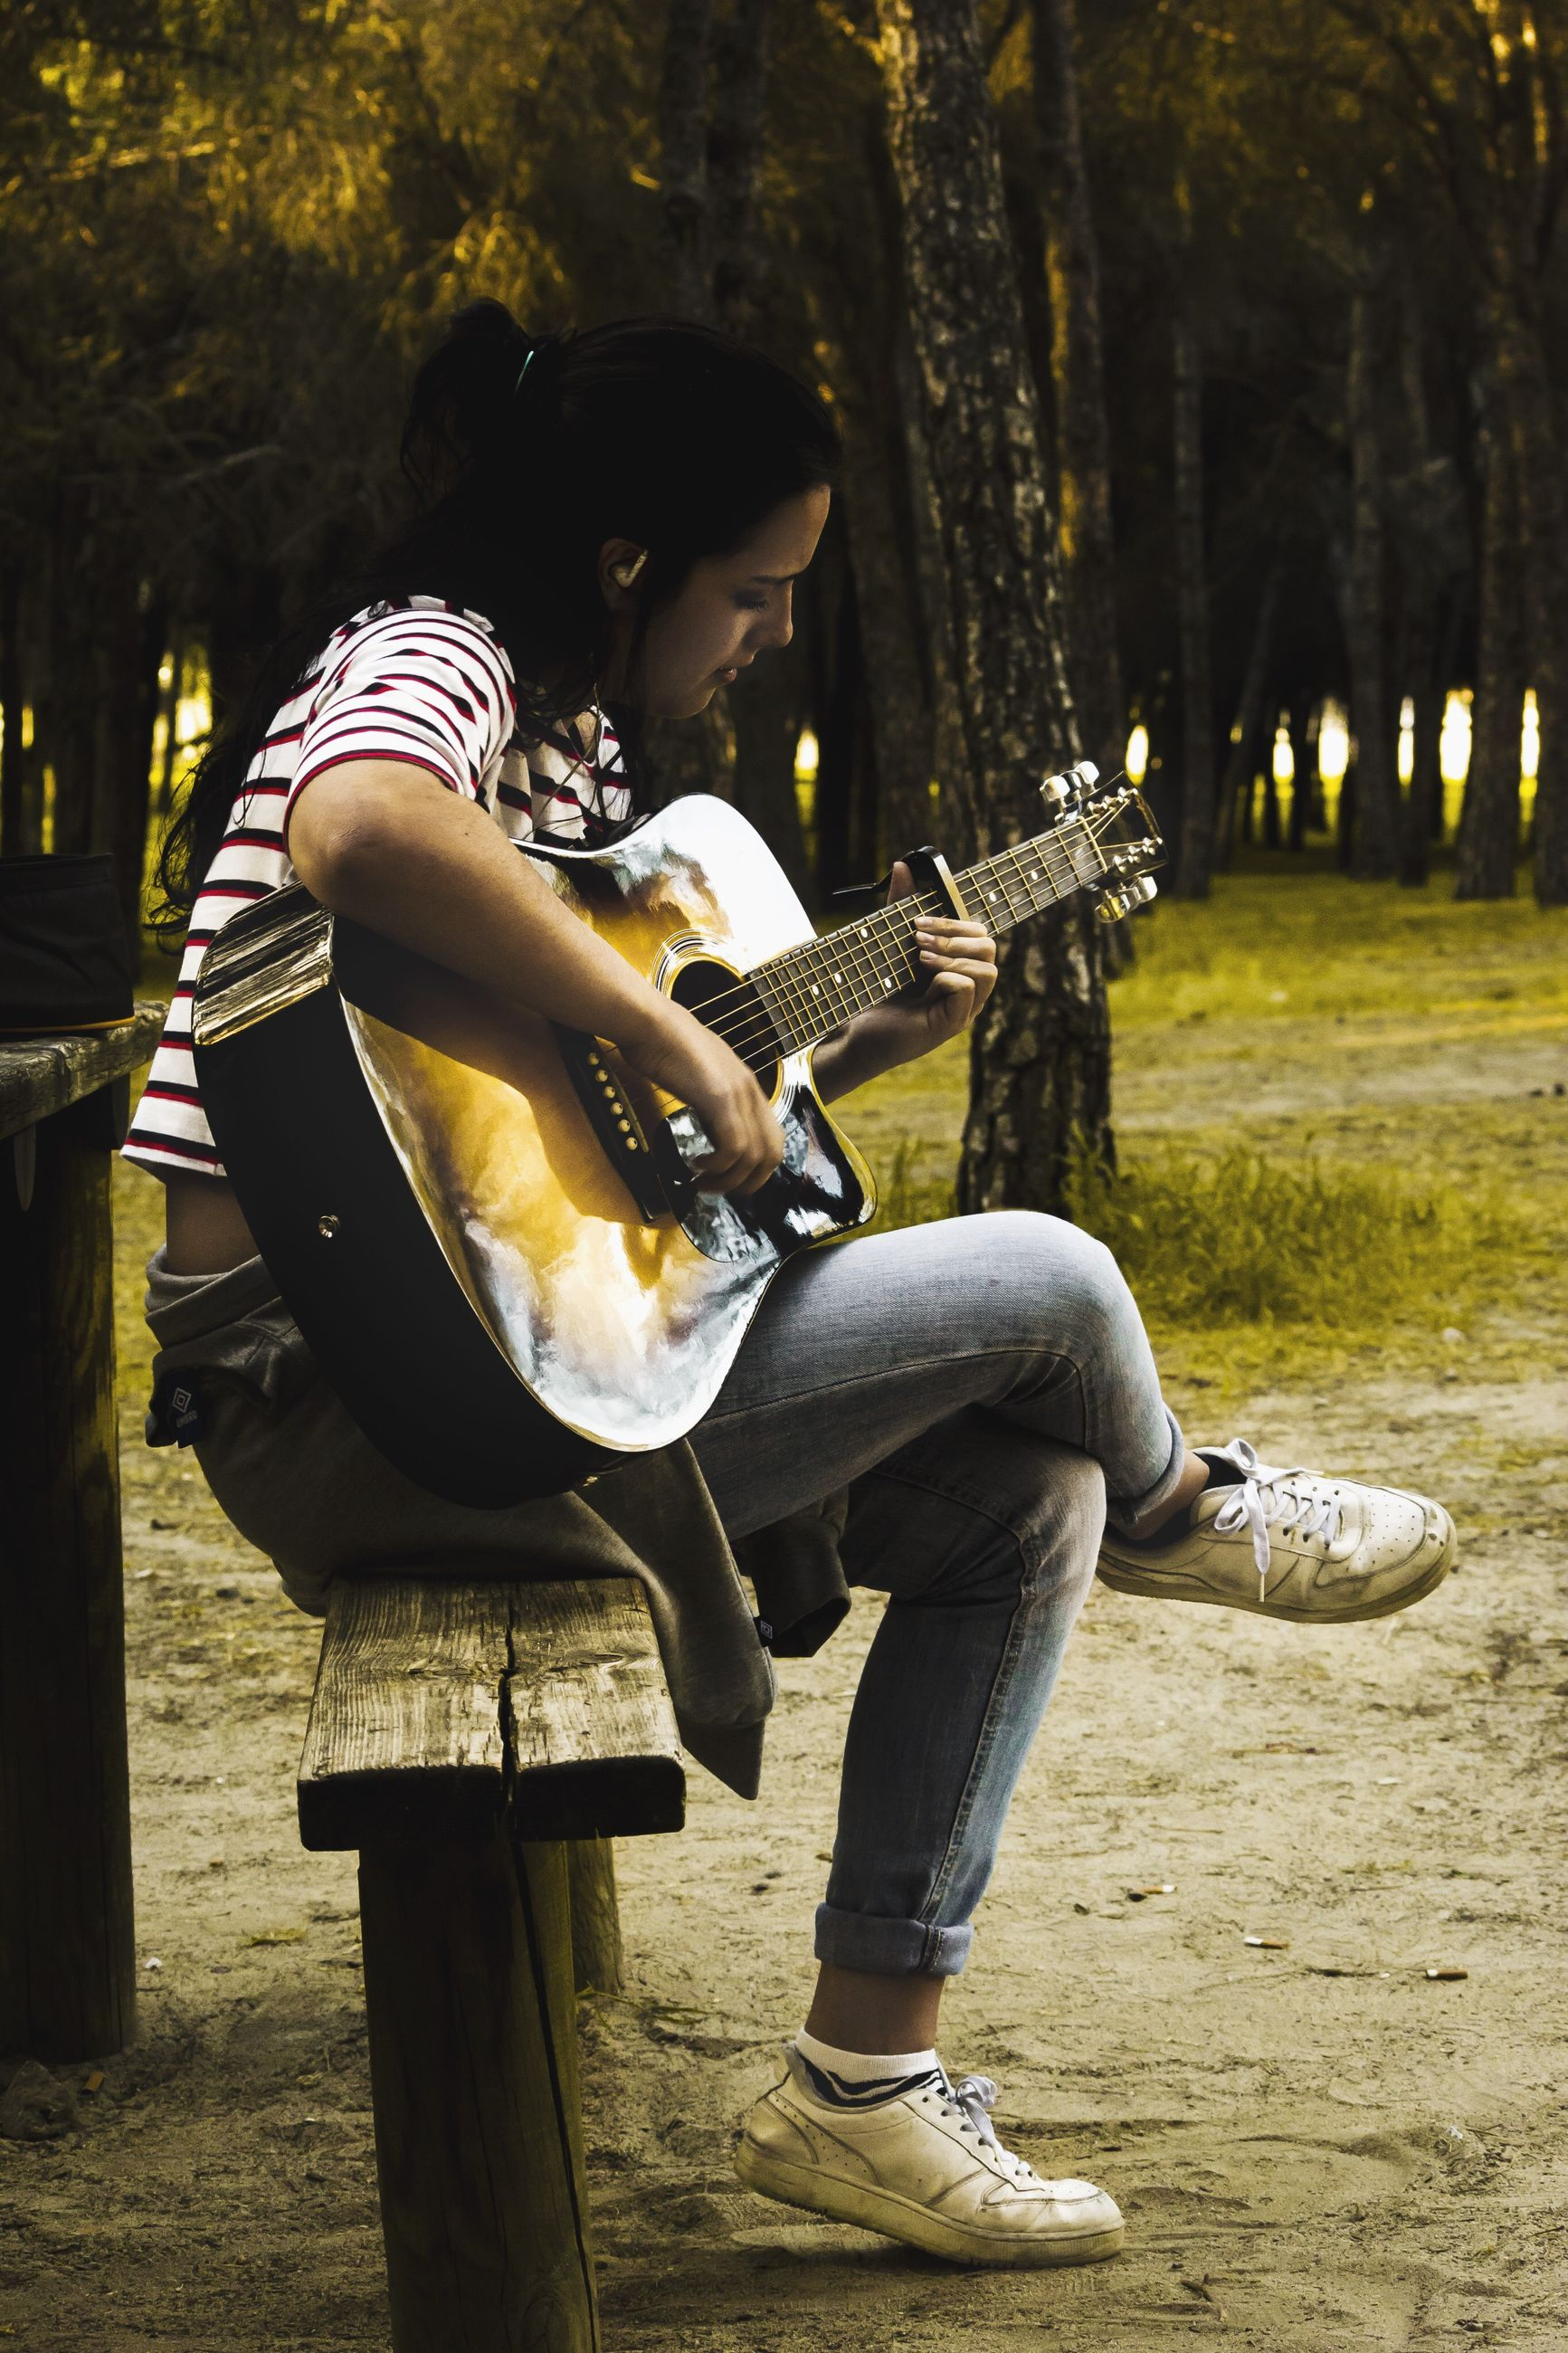 sitting, music, full length, adults only, guitar, one person, performance, one man only, arts culture and entertainment, only men, playing, people, adult, plucking an instrument, musical instrument, outdoors, musician, day, young adult